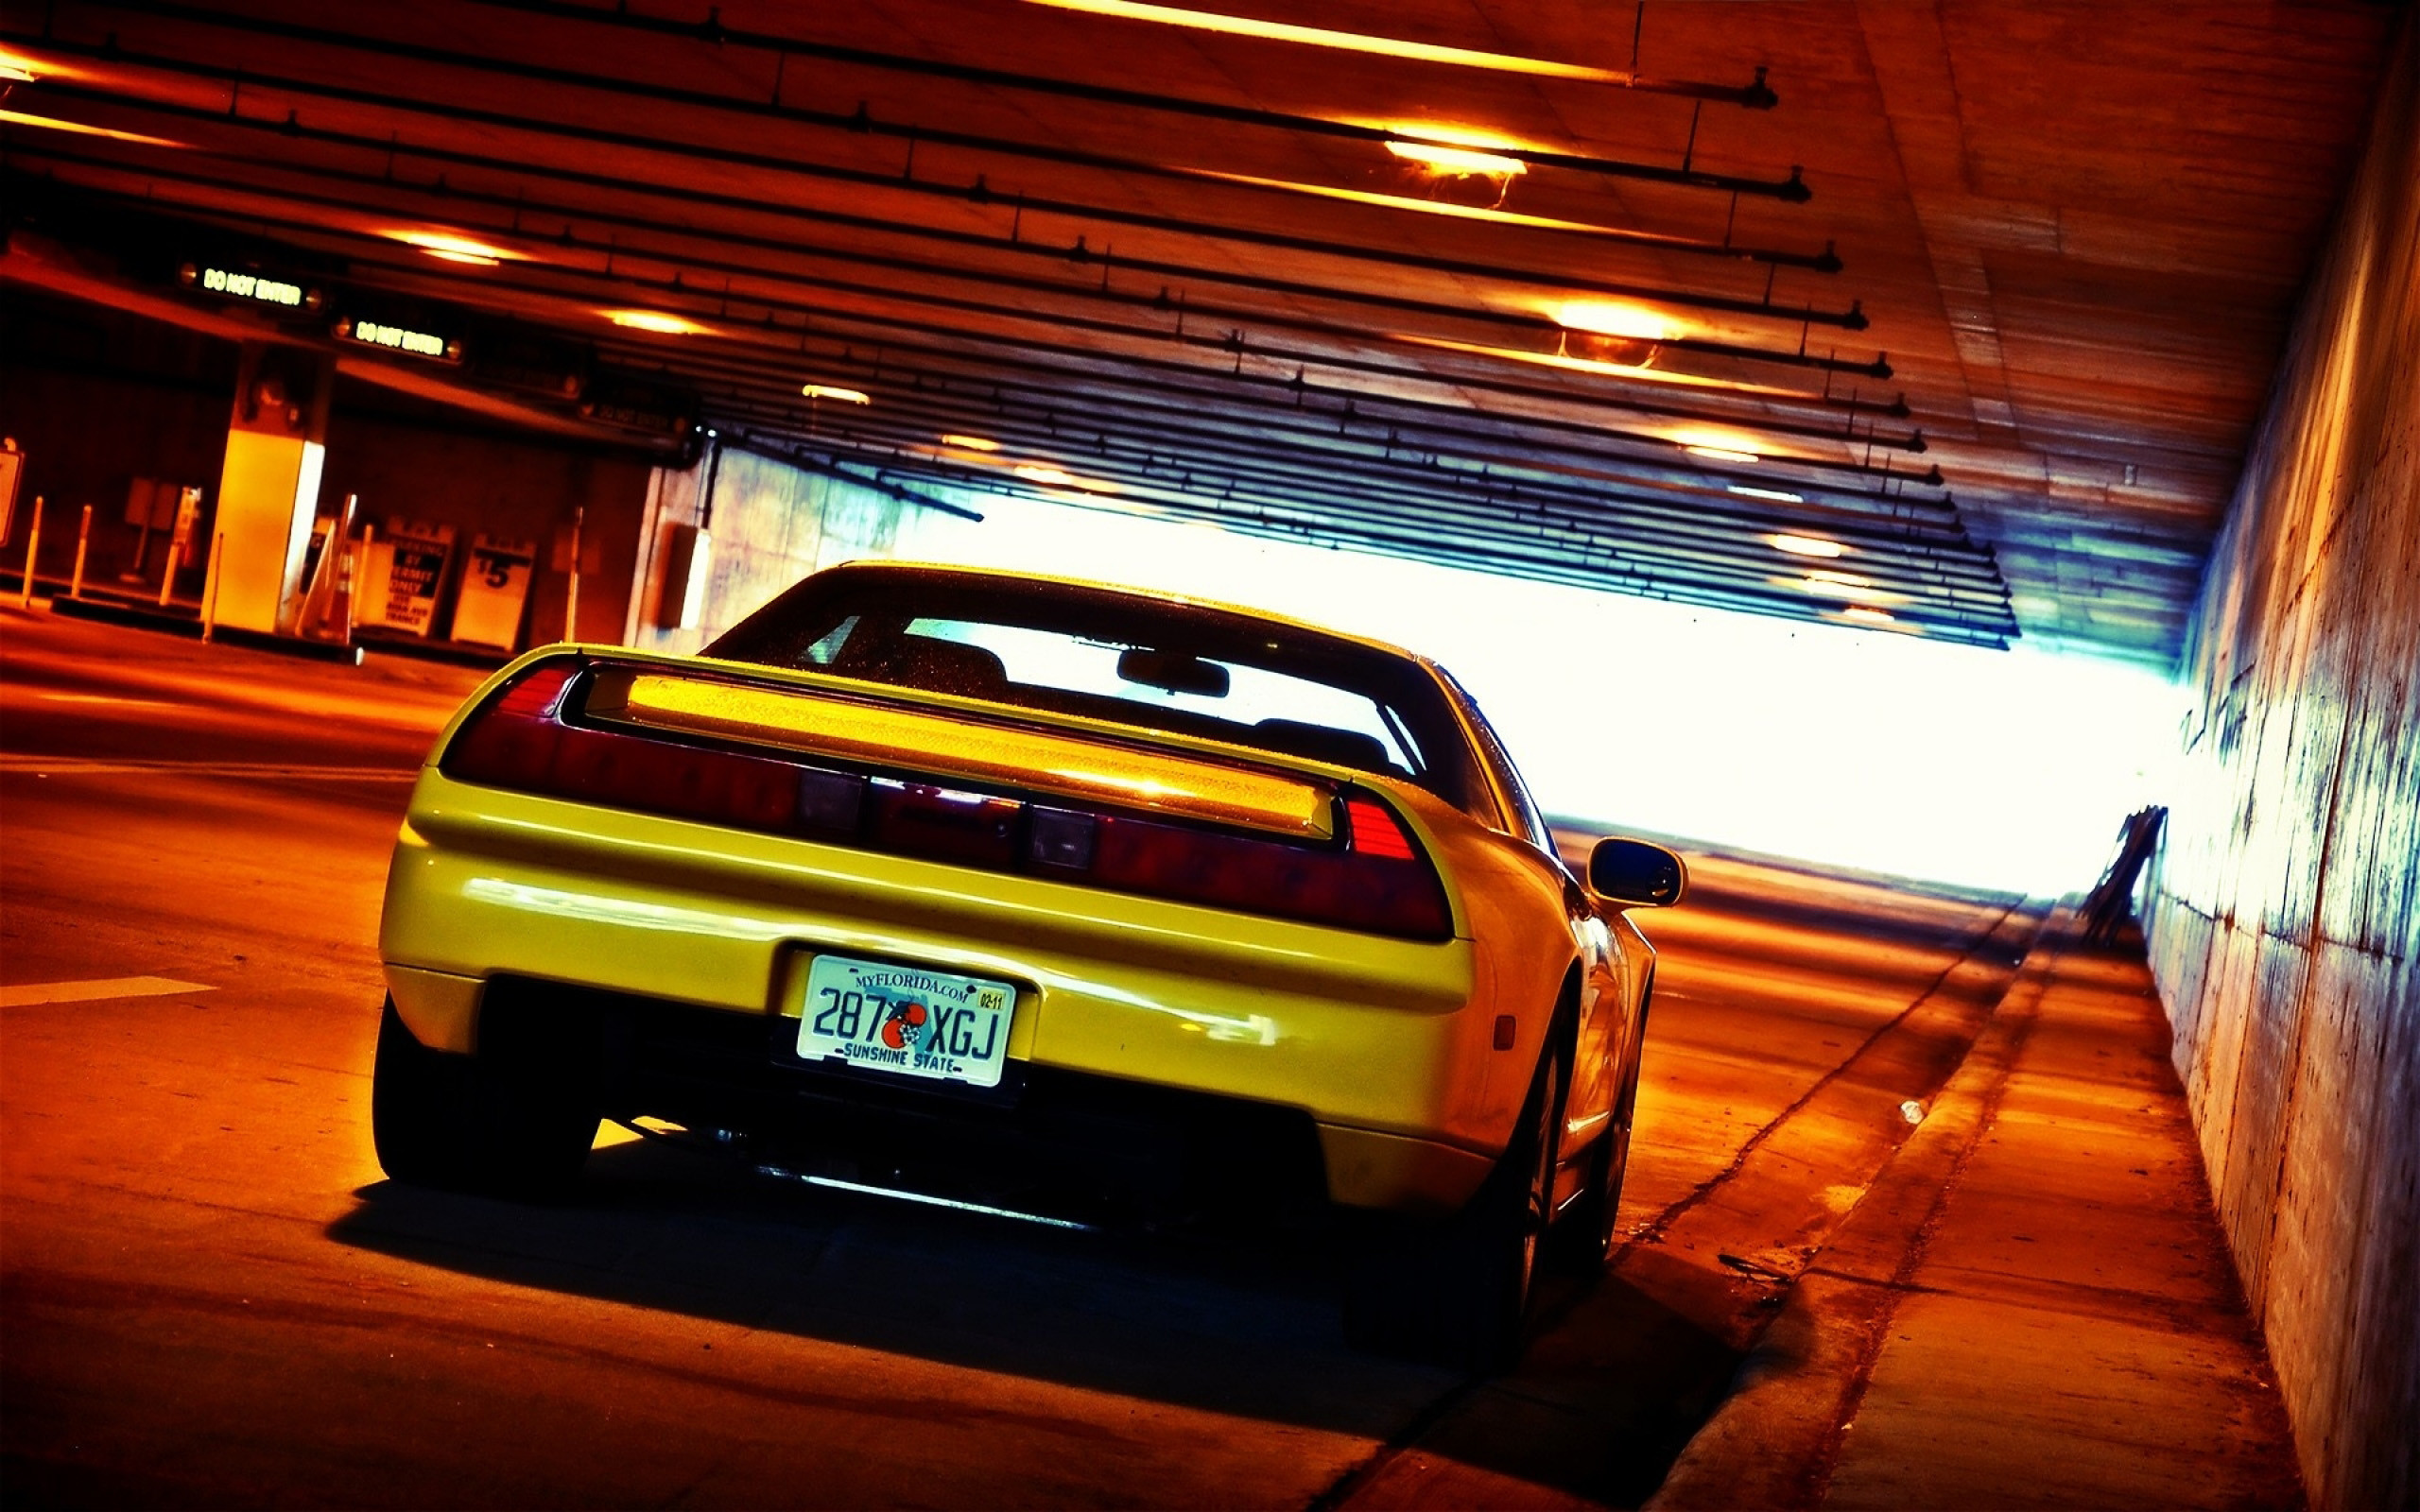 2560x1600 HD Wallpaper of Yellow Cars Honda Nsx Tunnel Jdm, Desktop Wallpaper Yellow  Cars Honda Nsx